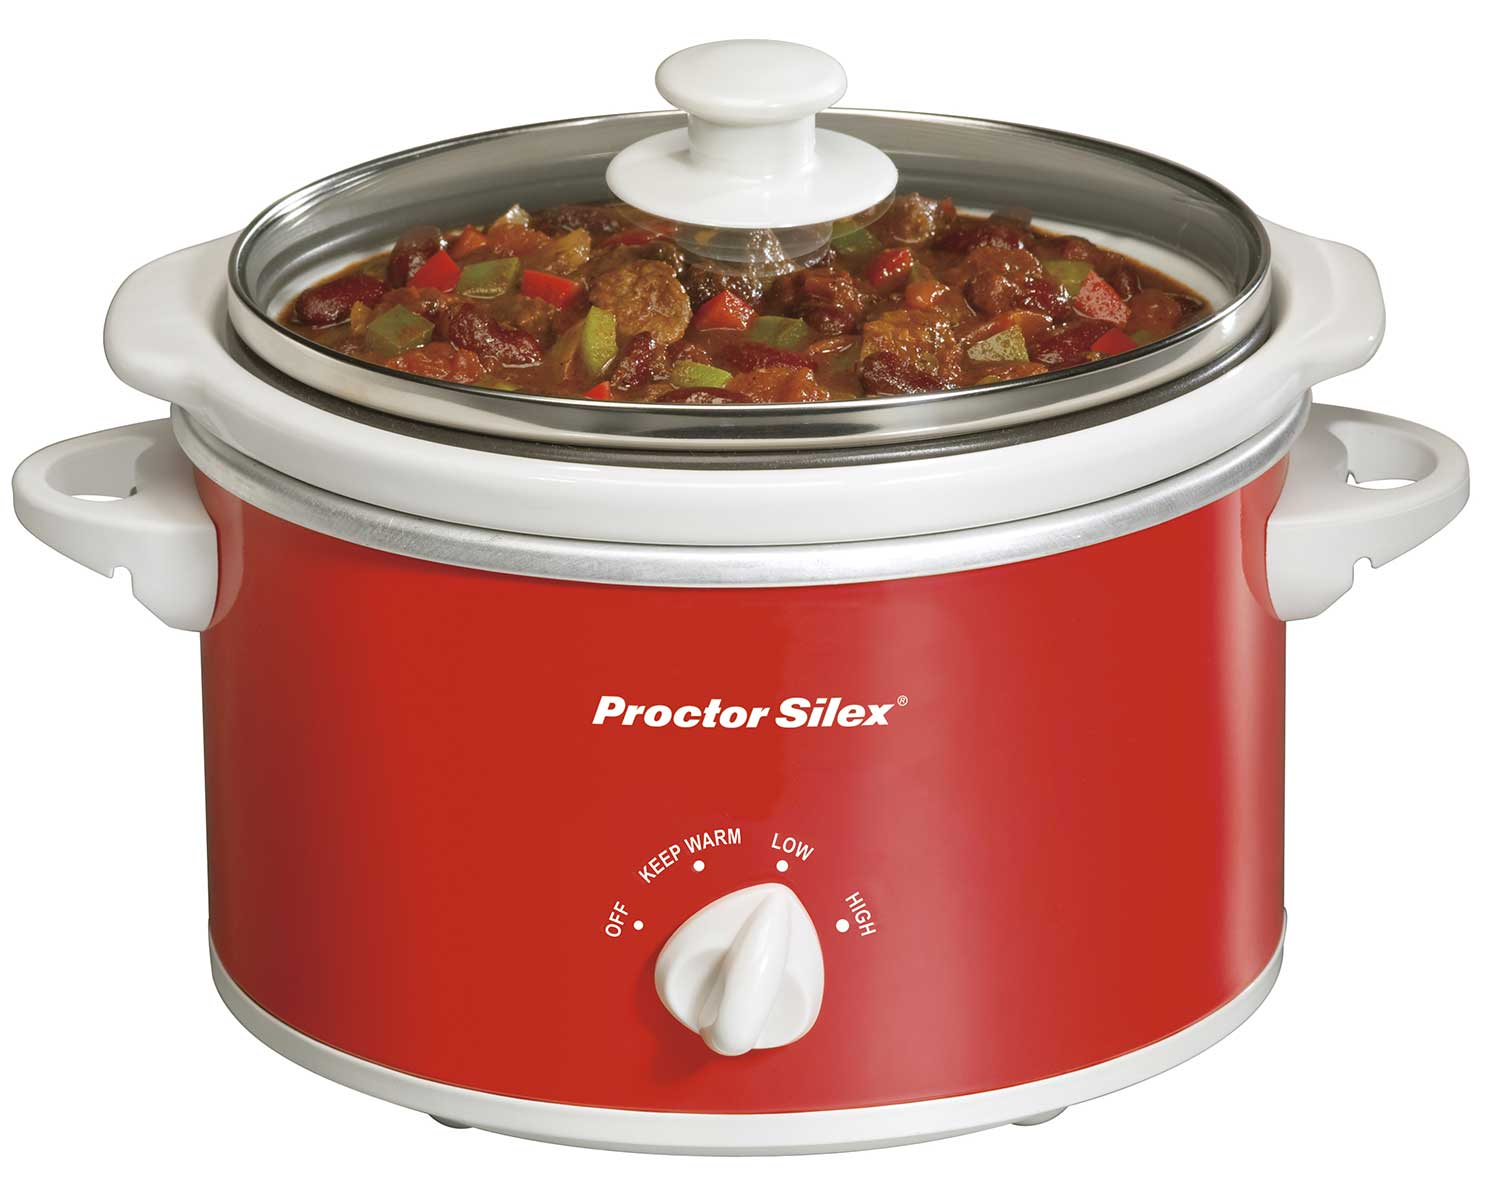 Portable 1.5 Quart Slow Cooker (red)